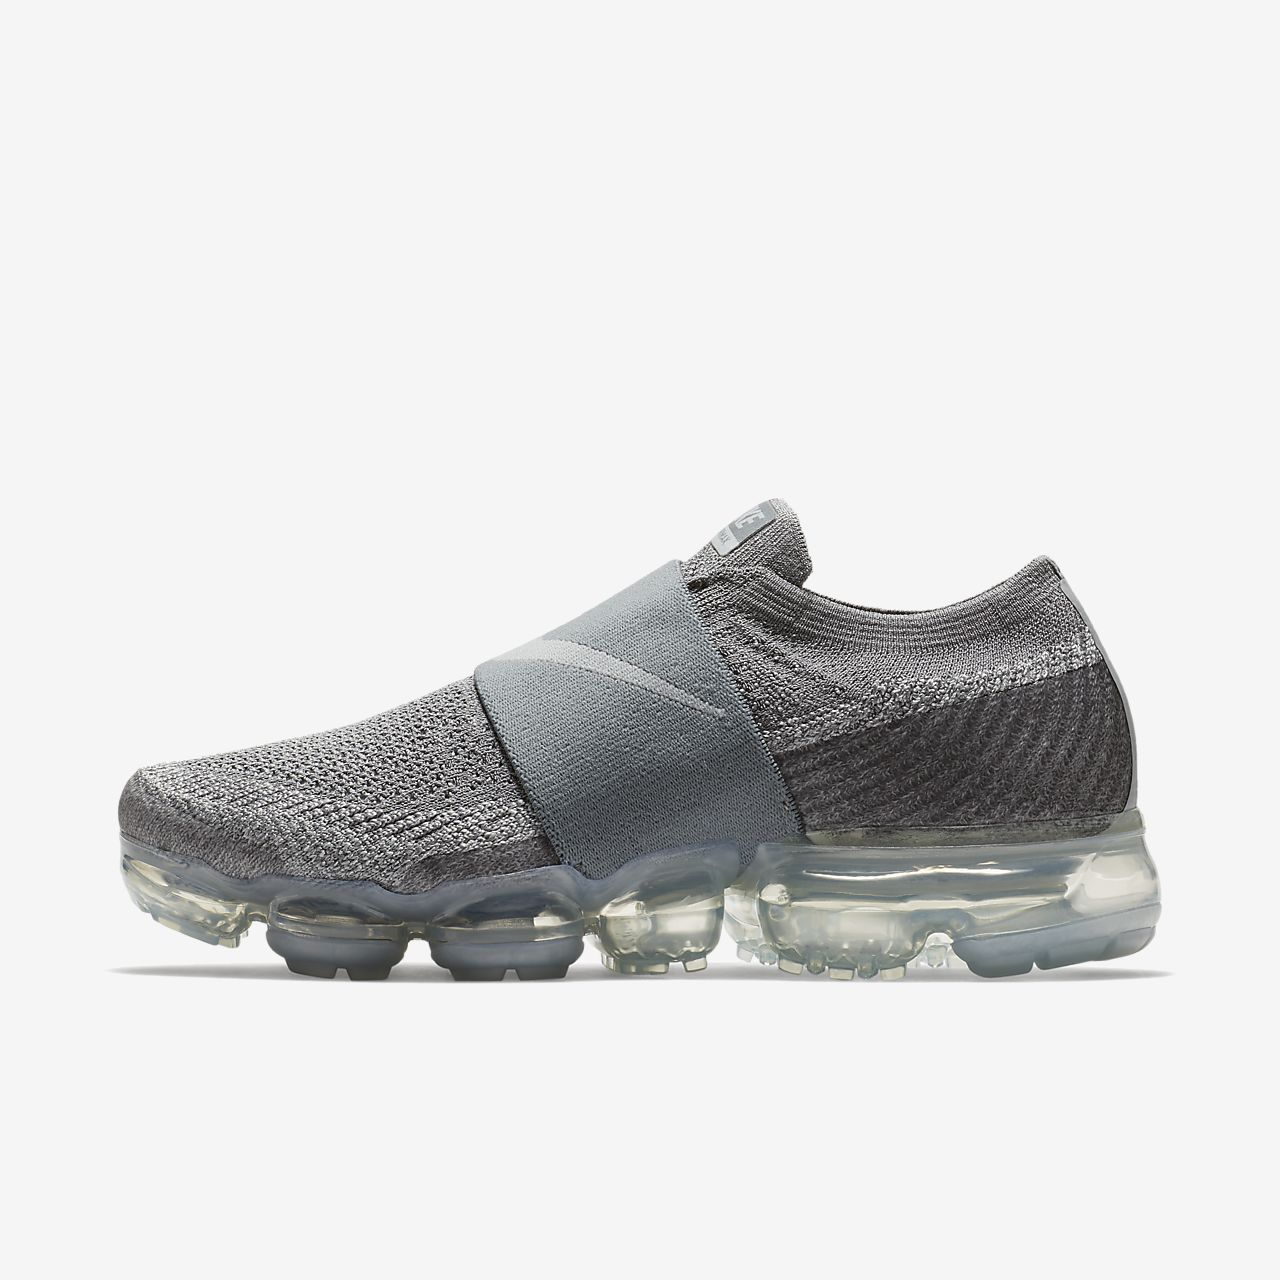 8f22bd93de Womens Nike Air Vapormax Flyknit Running Shoes biological-crop ...